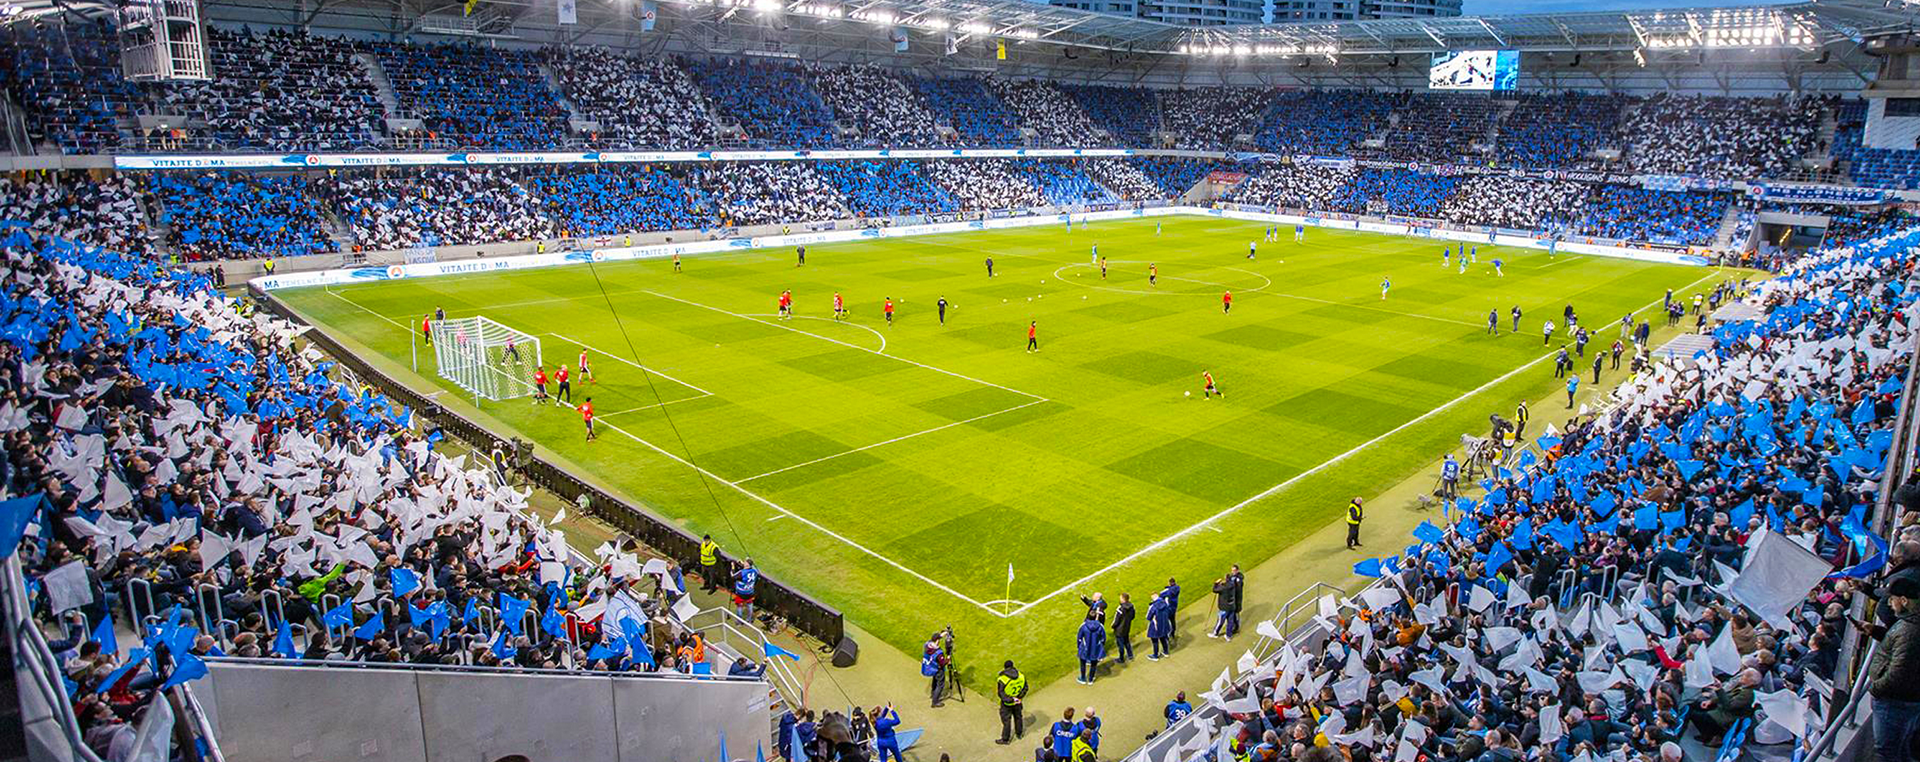 b2ee0c4b87fe6 The possibilities of purchasing the tickets for the home games of ŠK Slovan  Bratislava, stadium Tehelné pole: